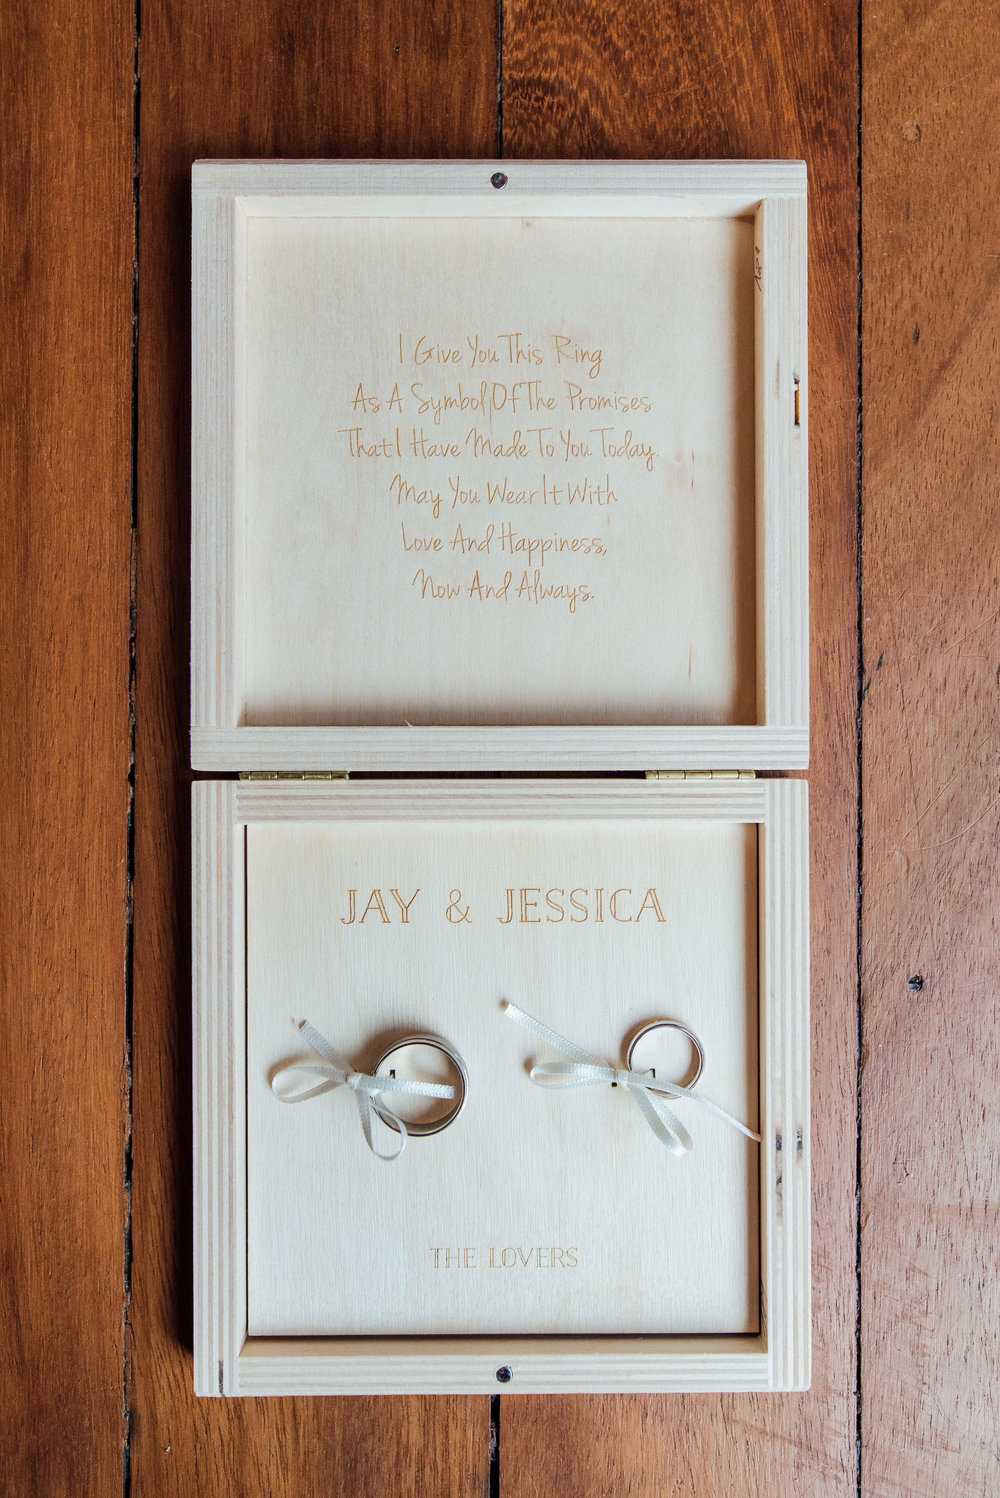 Wedding ring box ideas - Engraved wedding ring box at The George in Rye Easy Sussex wedding venue - Amy James Photography - Wedding photographer Hampshire